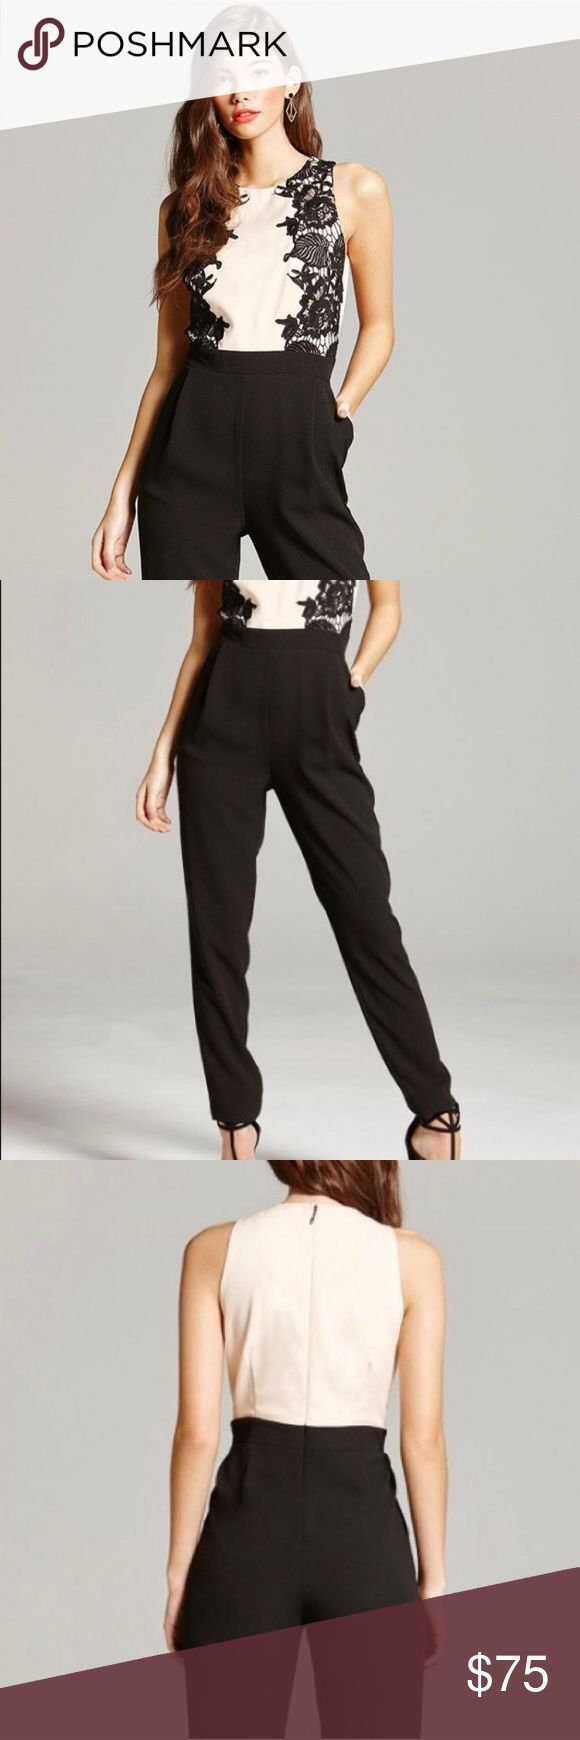 NWT Little Mistress Lace Jumpsuit UK Brand also sold at ASOS. Beautiful lace overlay. This was UK sizing in an 8, but it should fit a 6 as UK sizes are smaller than American sizes. ASOS Pants Jumpsuits & Rompers